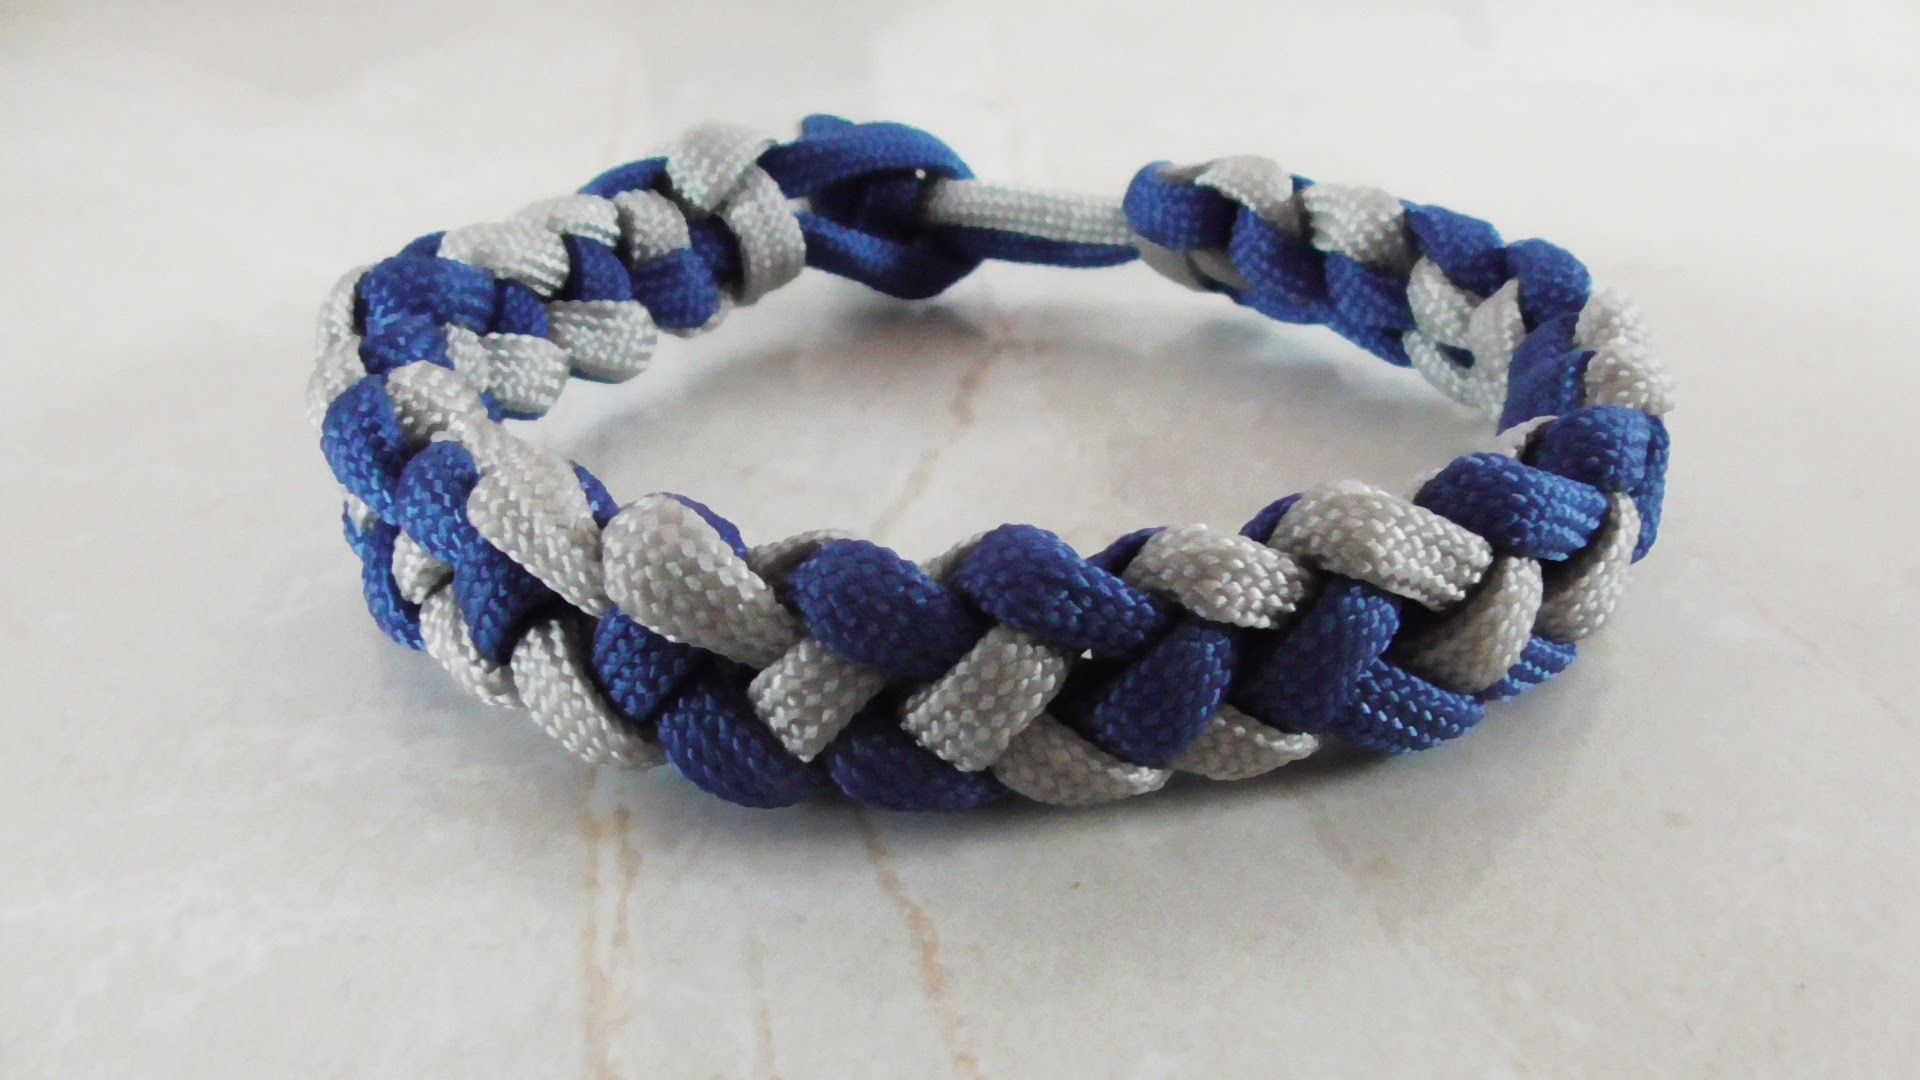 How To Tie A Coyote Trail Paracord Bracelet Without Buckle